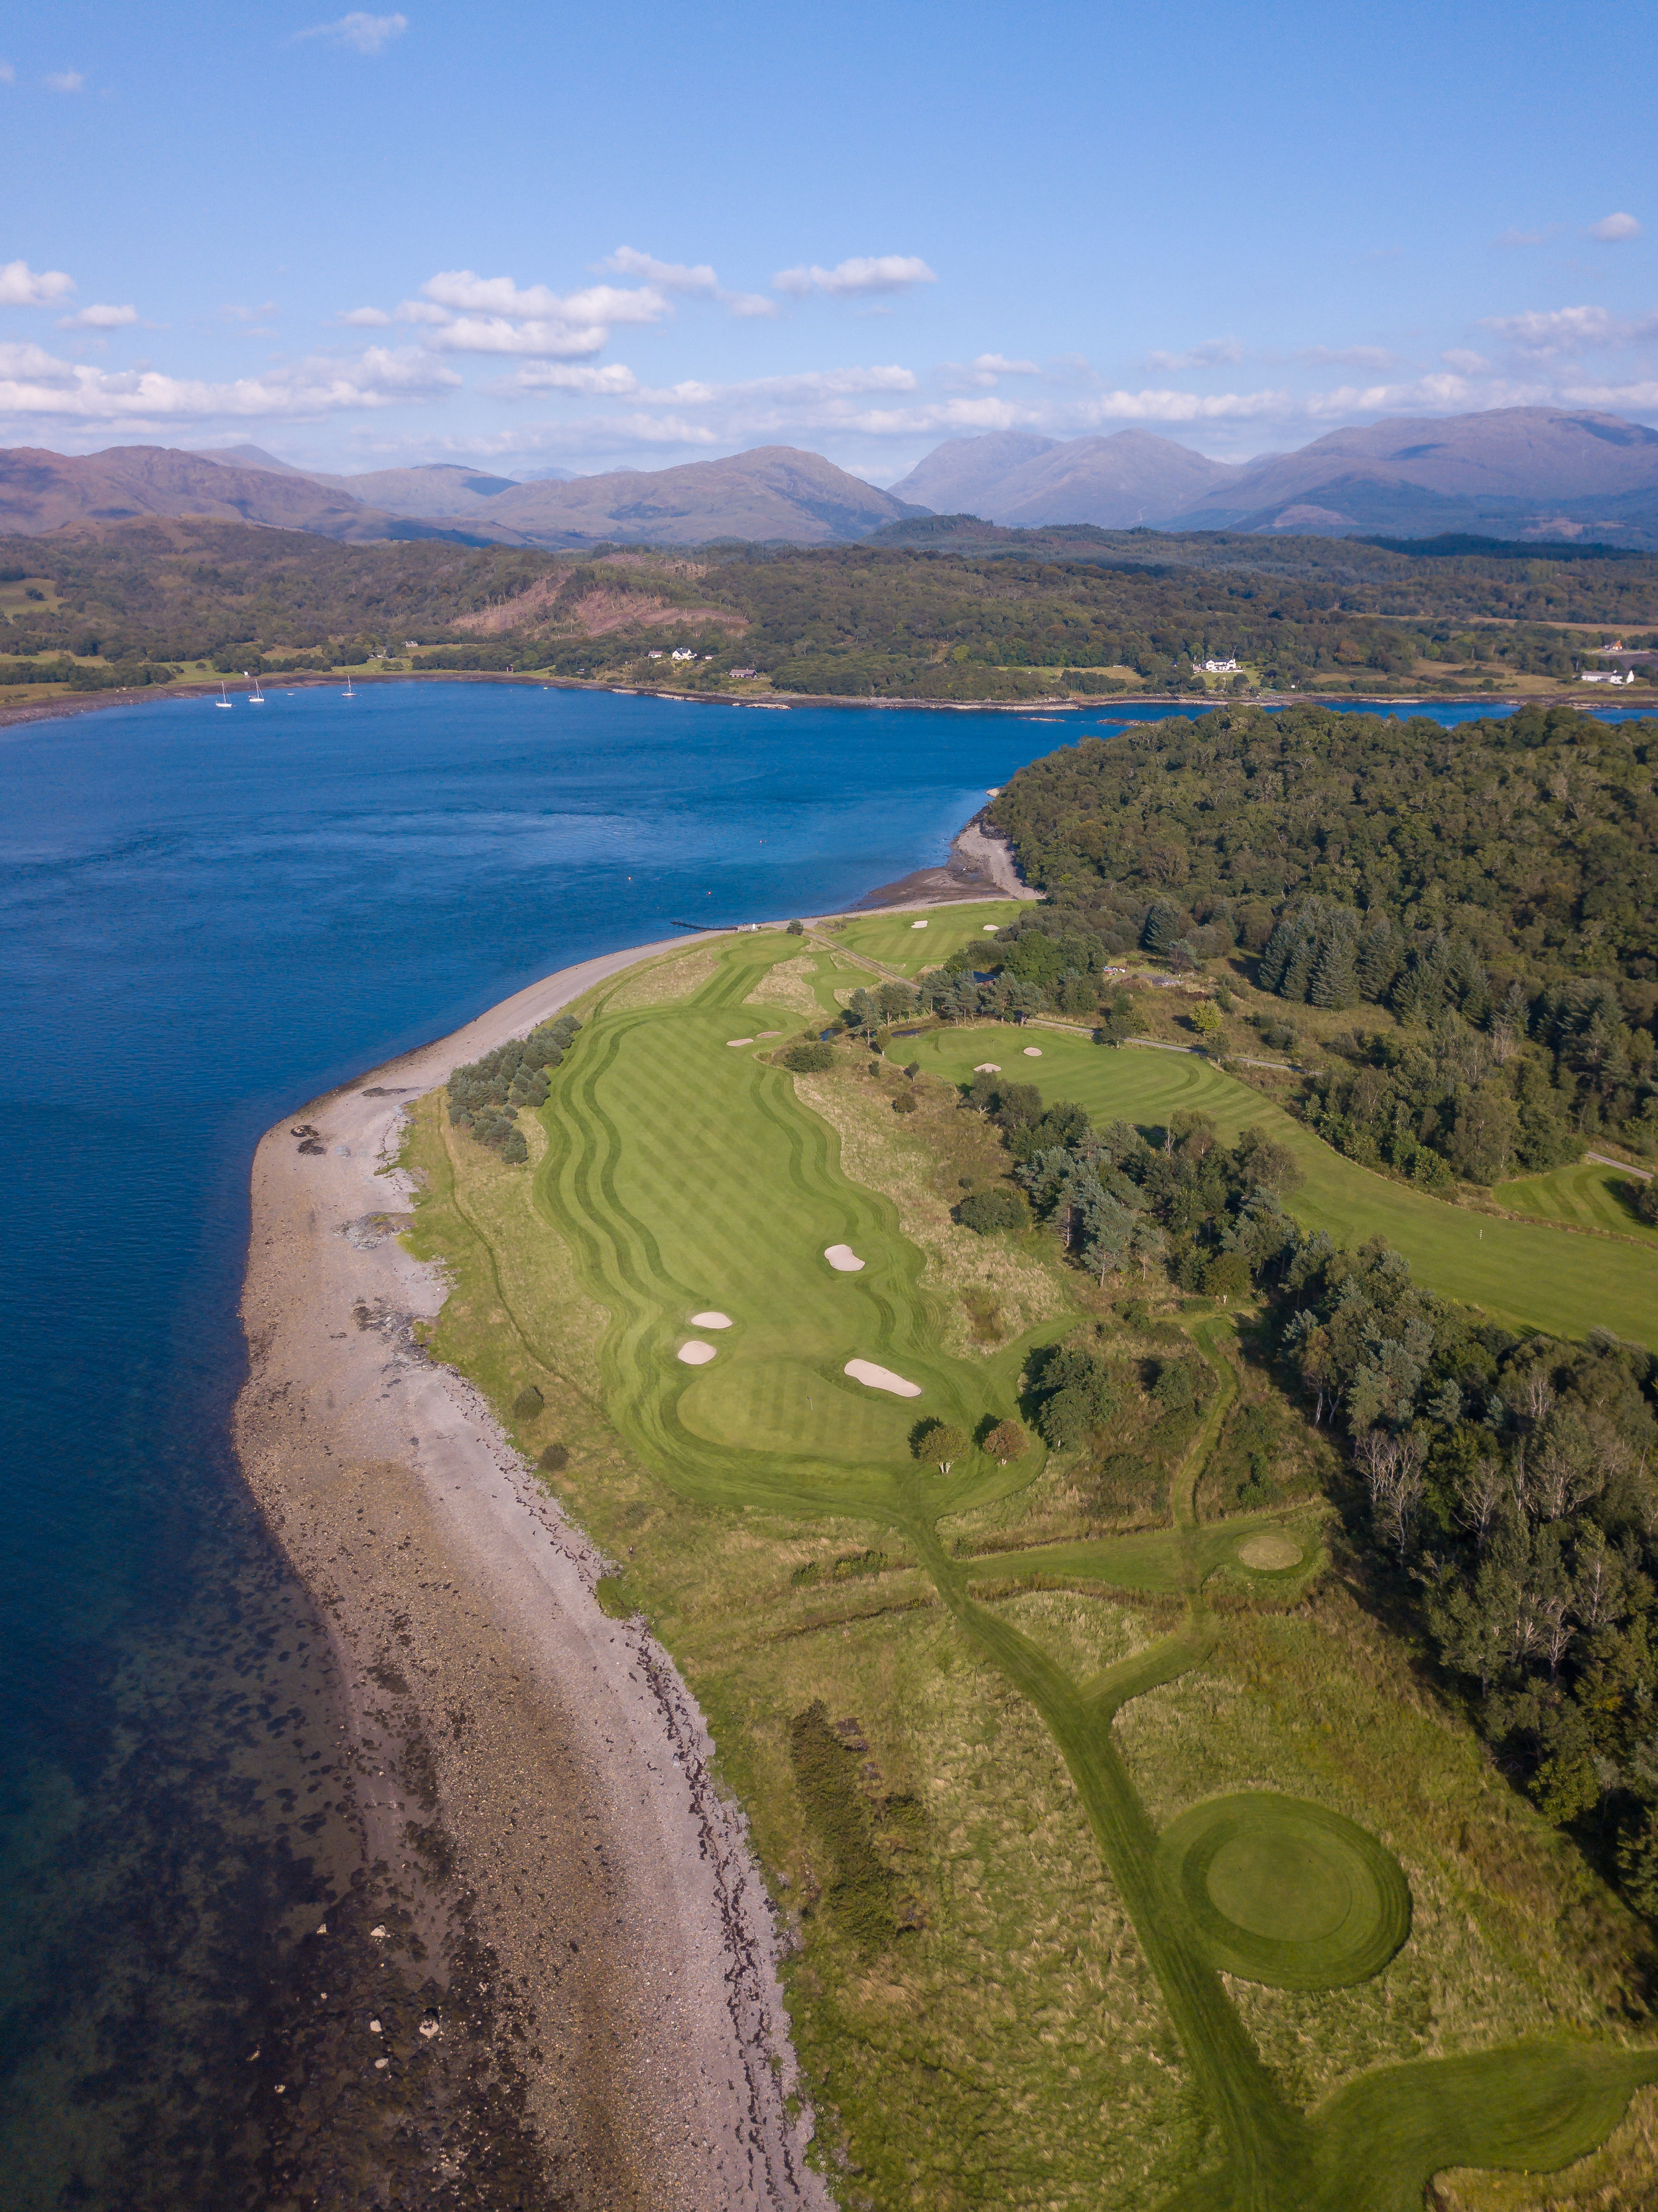 The island scenery surrounding the hotel and the iconic six-hole golf course plays a key part in the promotional film.